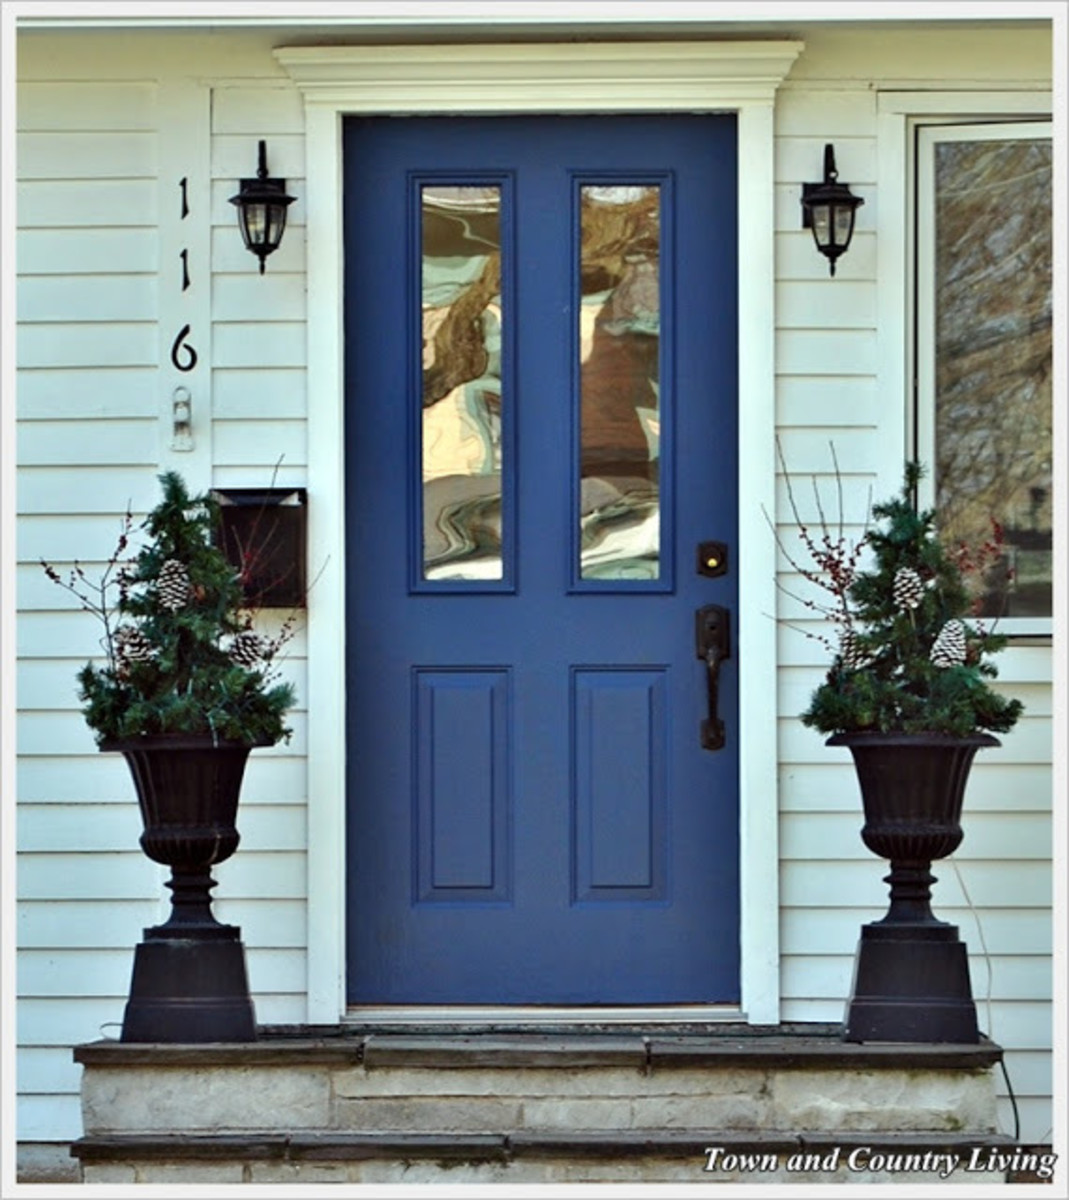 Indigo is much casual. A lot of people have Federal Blue or Williamsburg Blue doors. Indigo Blue is something in between the two, closer to Navy, but not nearly as deep and rich.